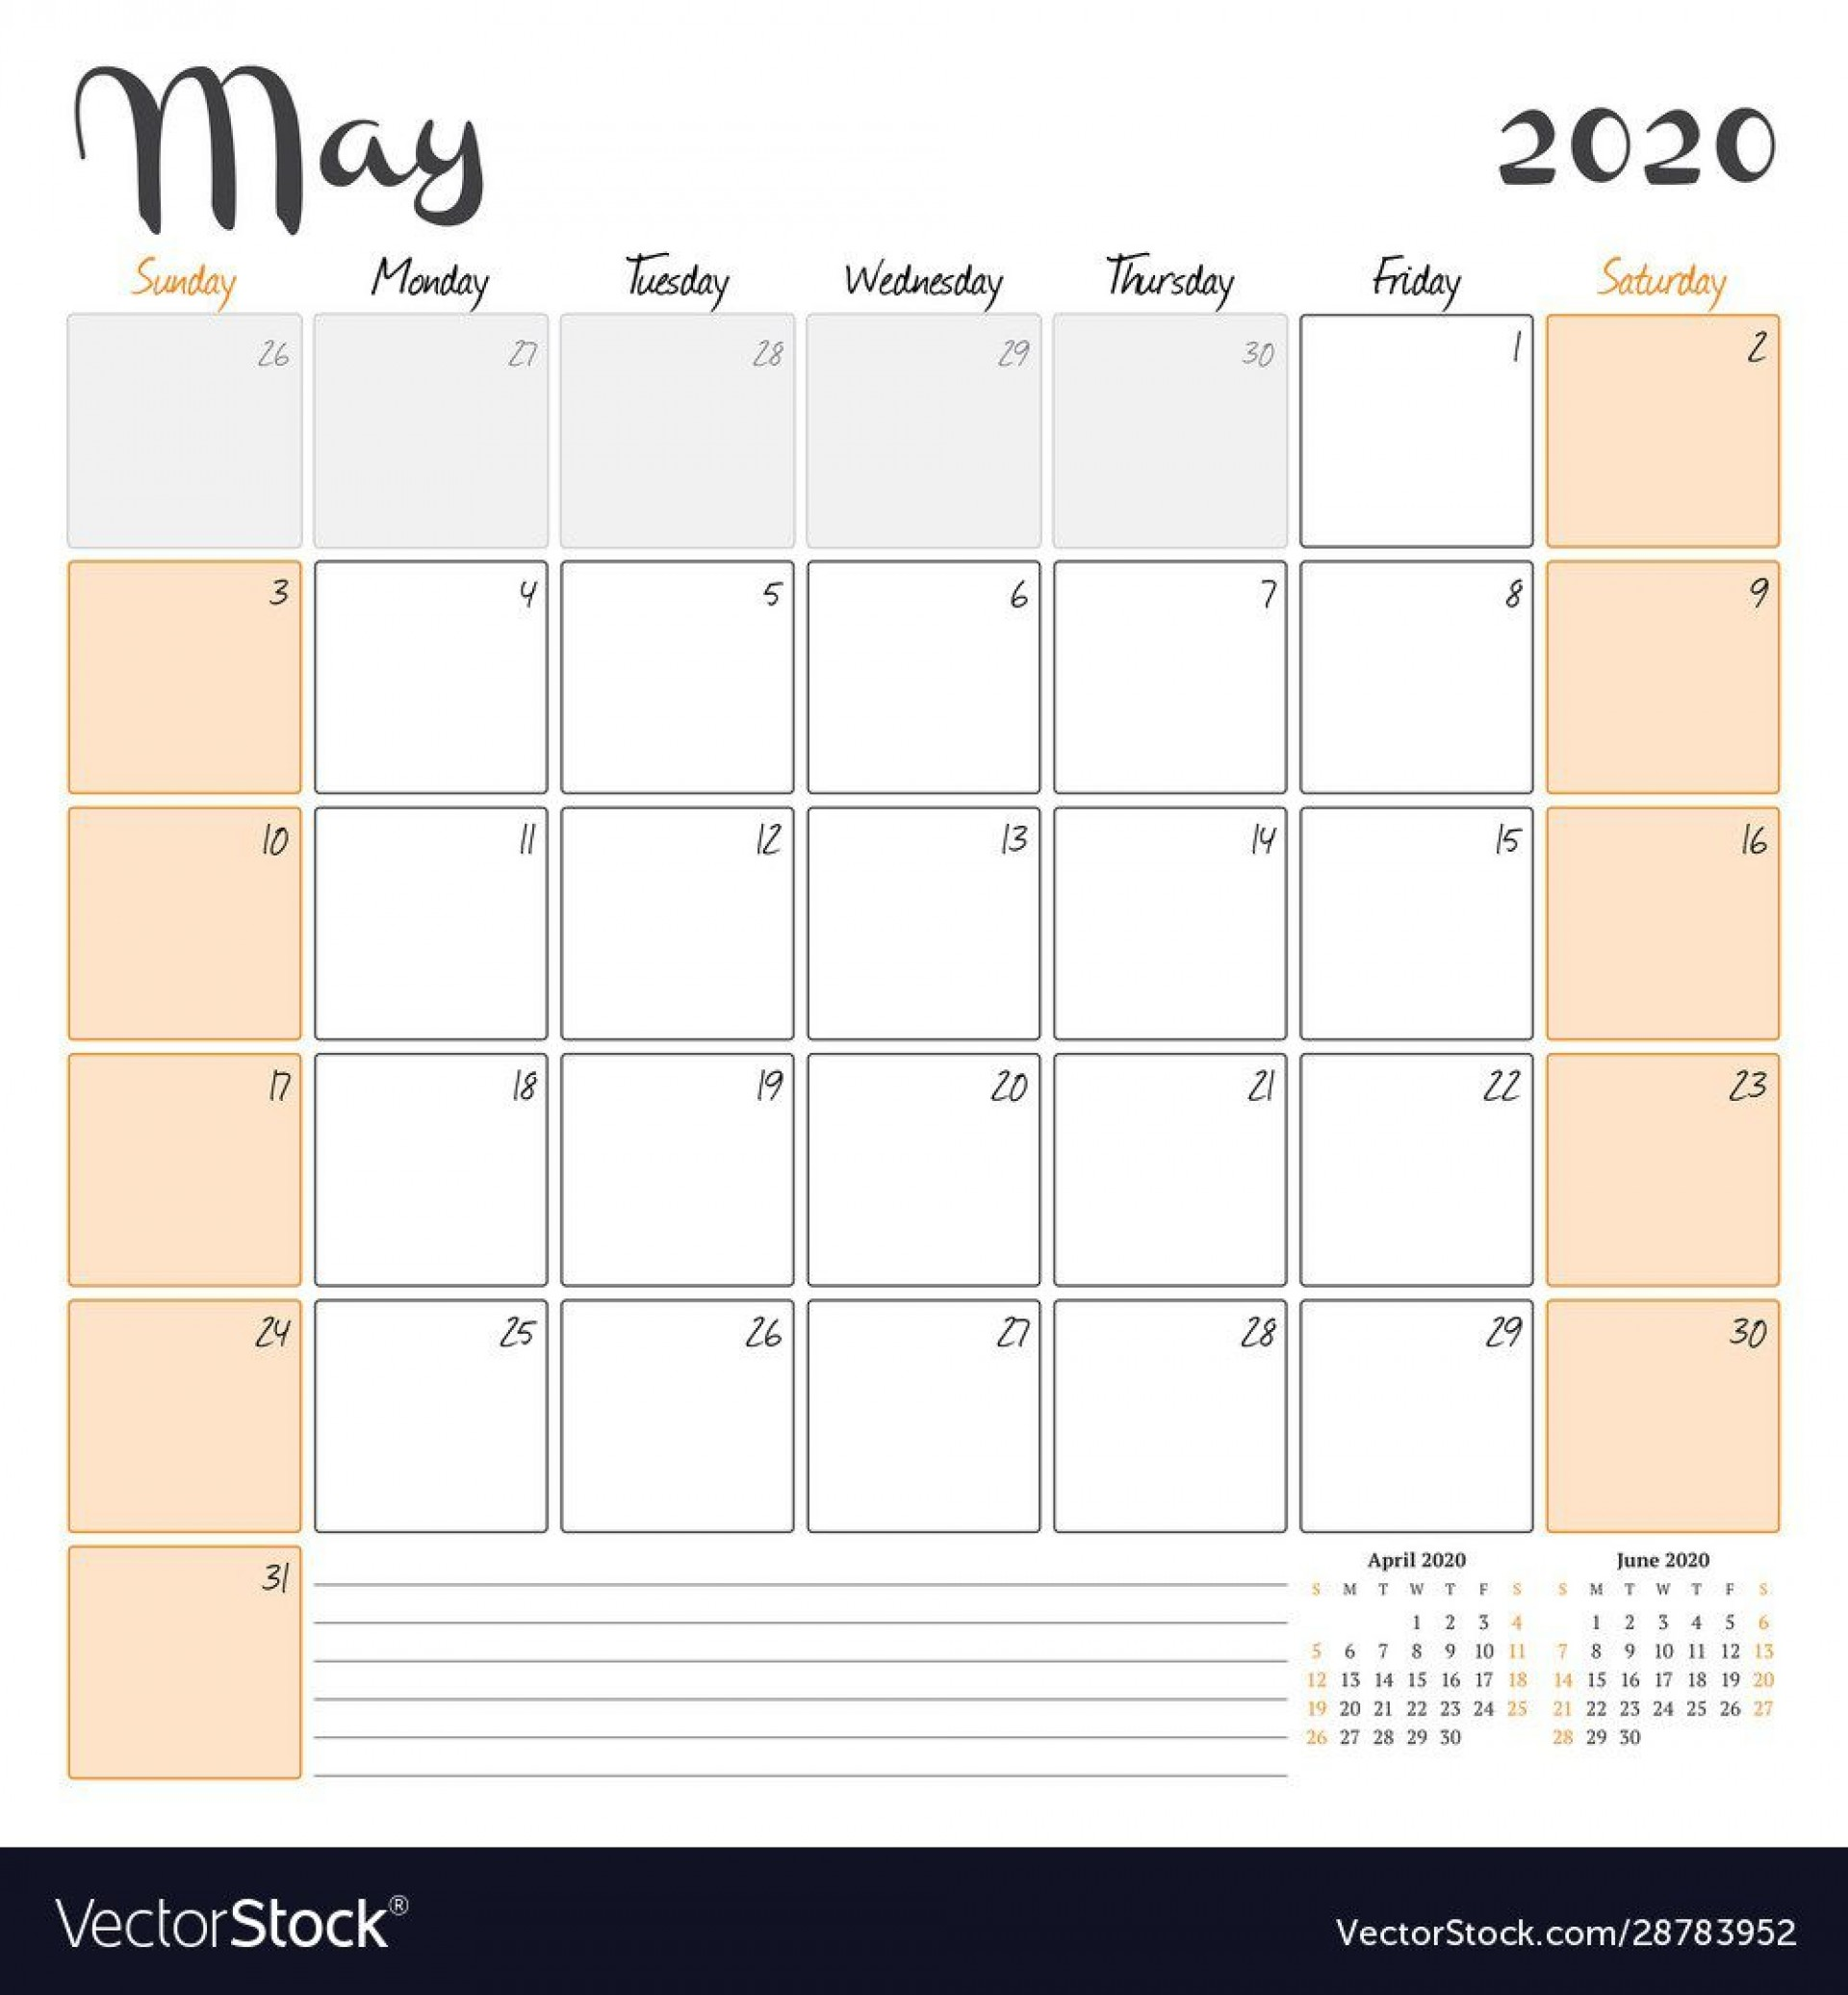 007 Awful 2020 Monthly Calendar Template Sample  Templates Word Australian Free1920